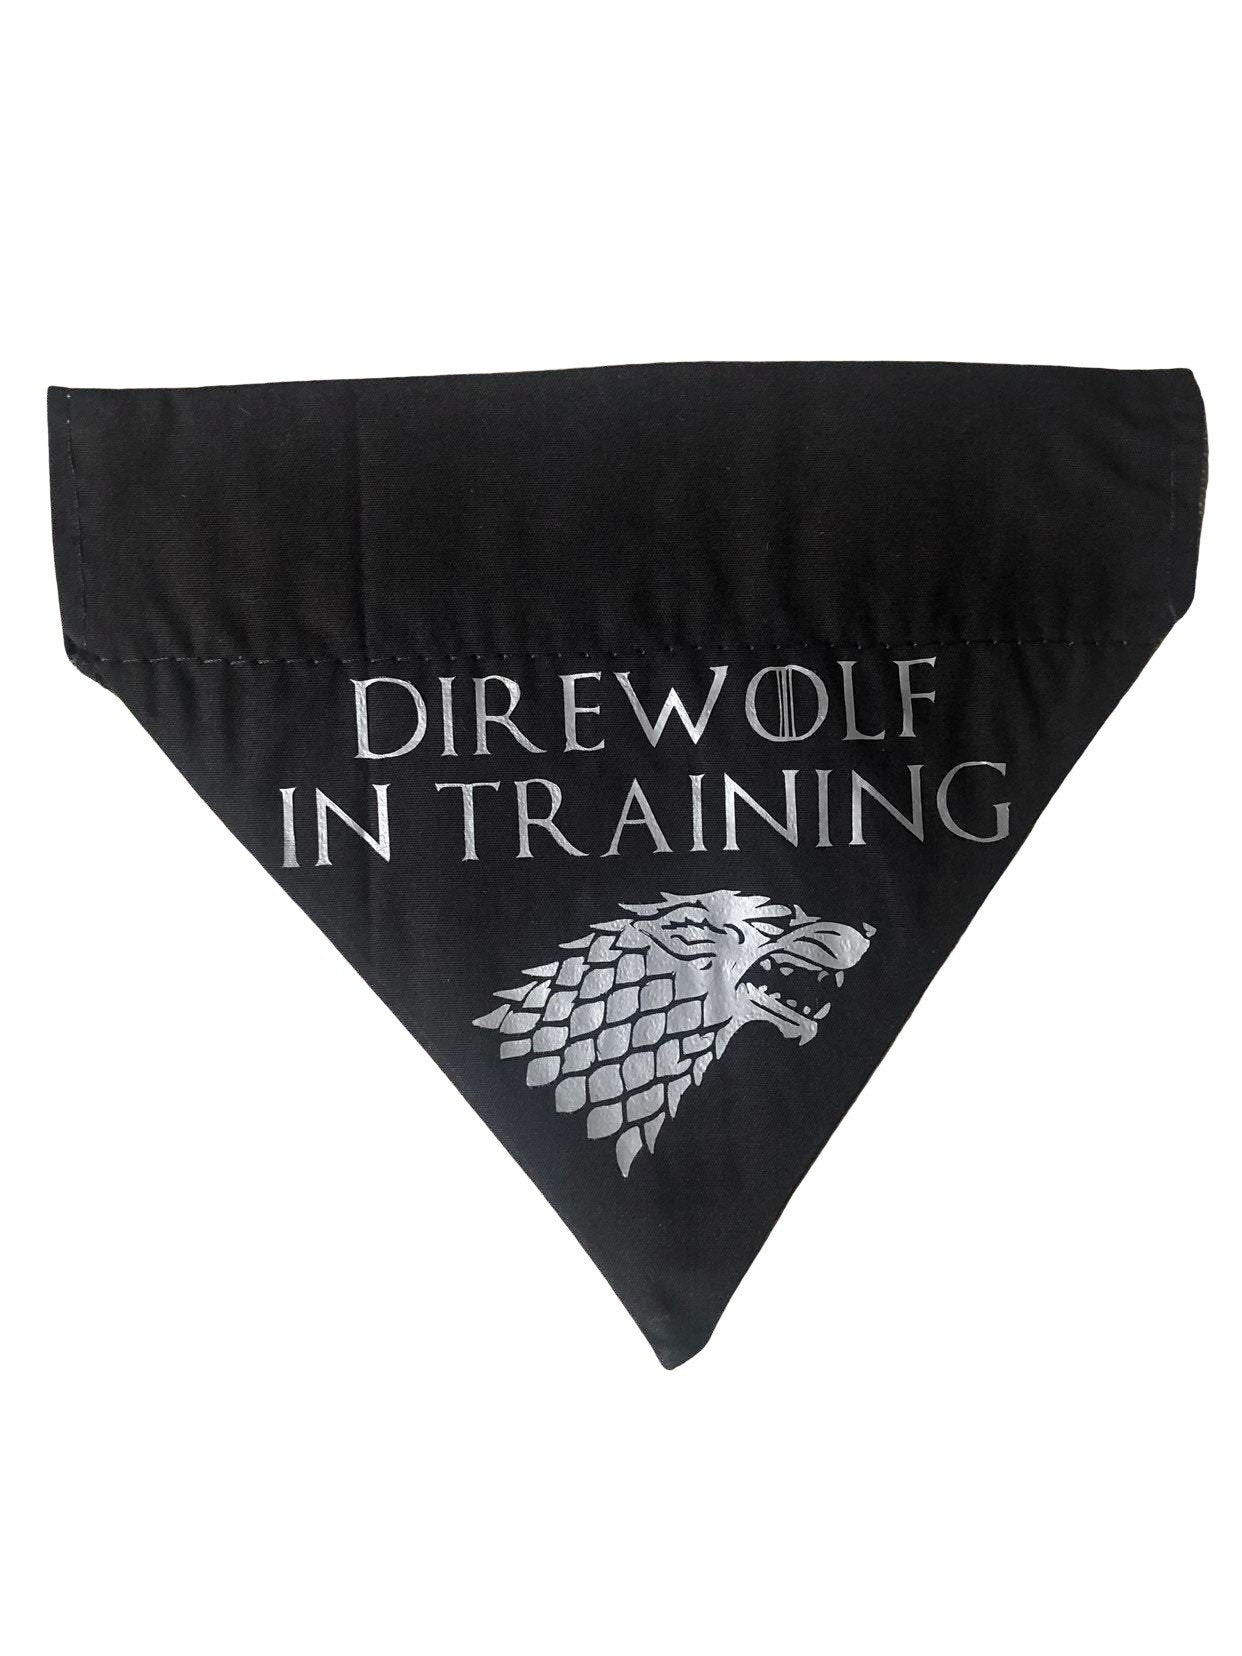 Game of Thrones - Direwolf in Training Bandana